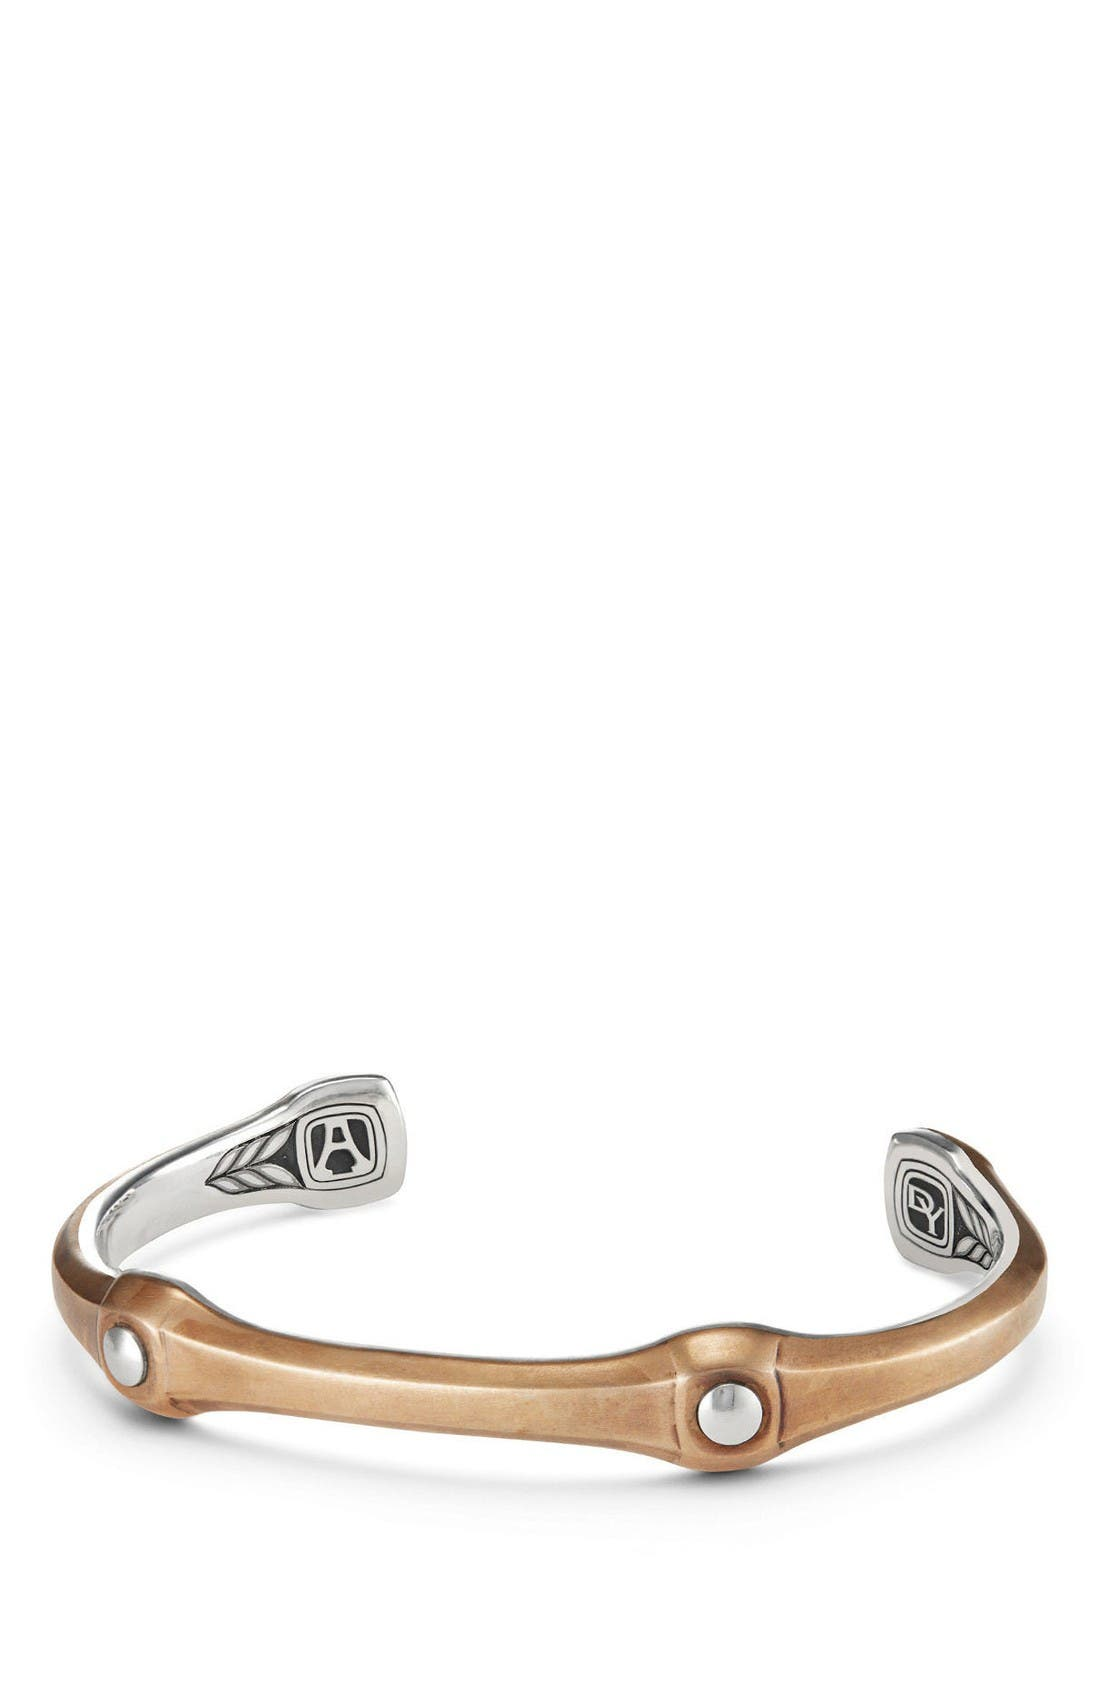 Alternate Image 1 Selected - David Yurman Anvil Cuff Bracelet, 10.5mm